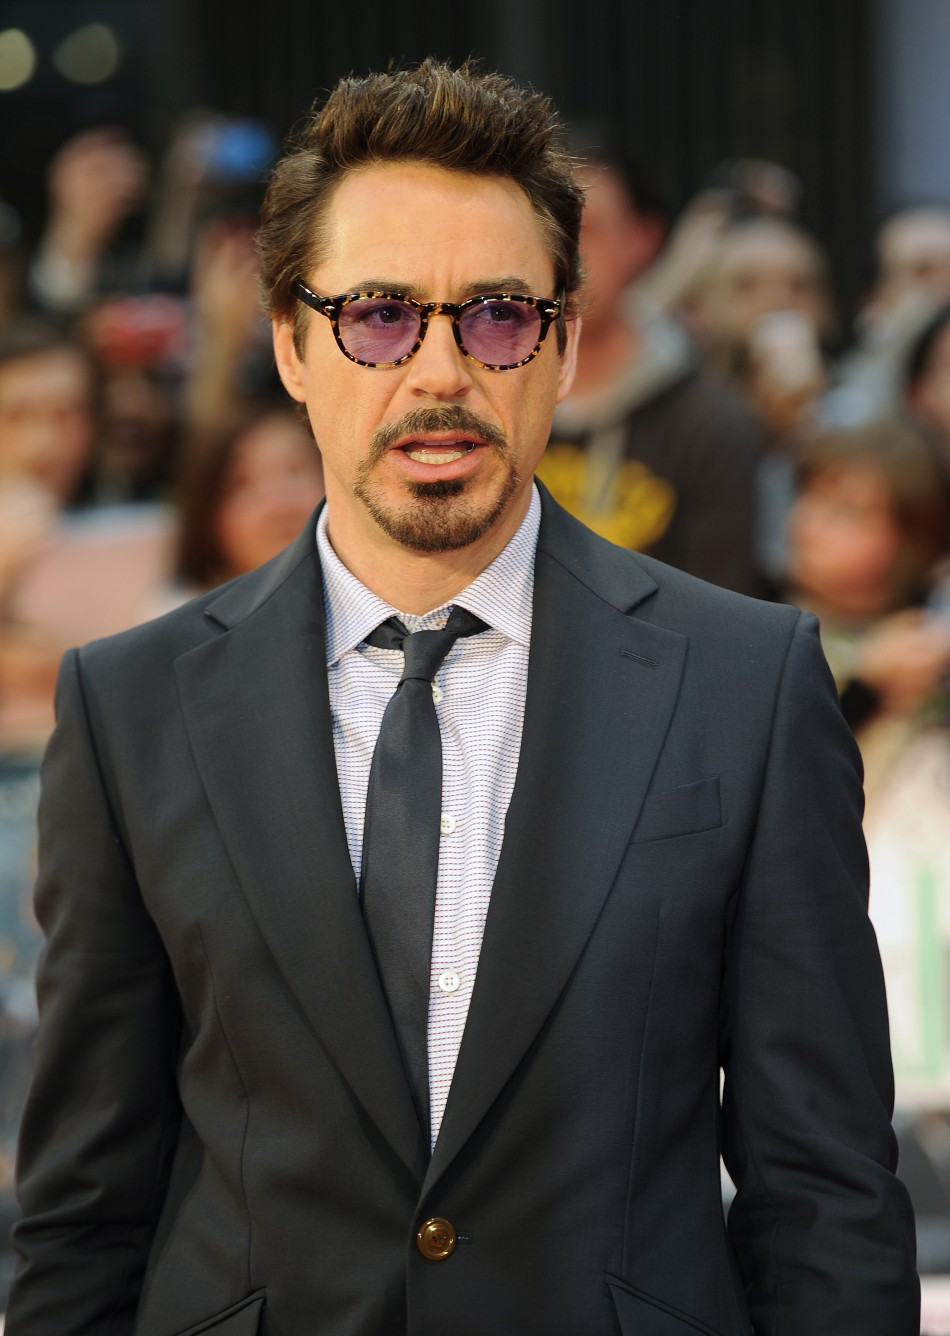 Robert Downey Jr. in European 'Avengers' Premiere Red Carpet